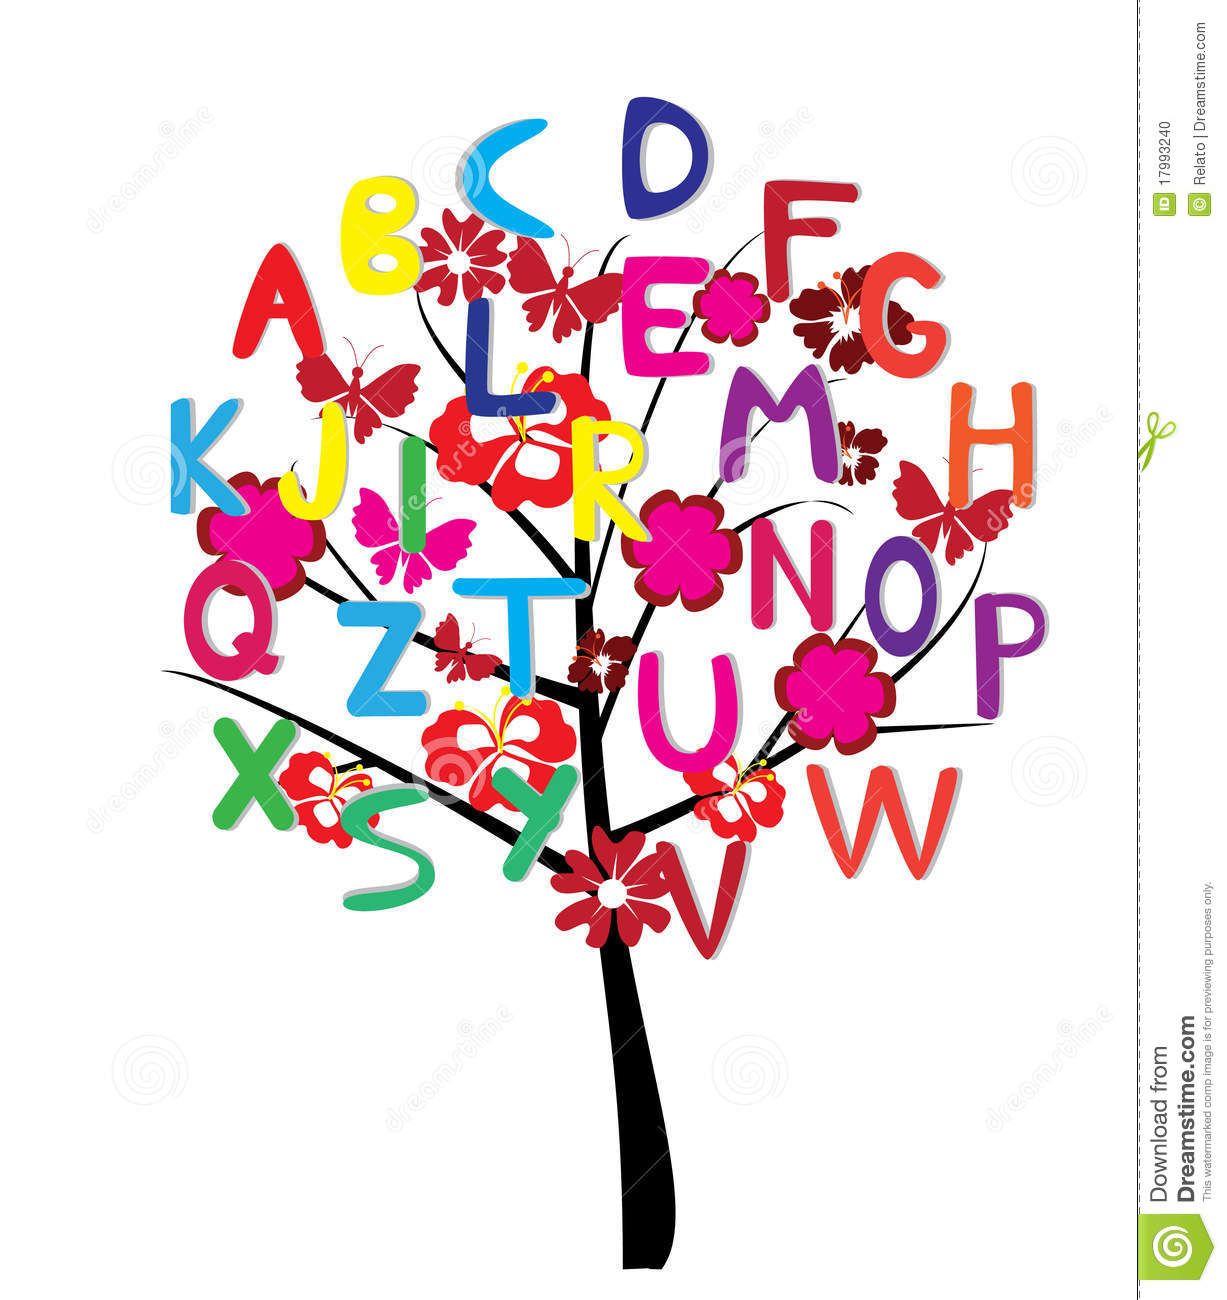 Alphabet Tree Stock Photo - Image: 17993240